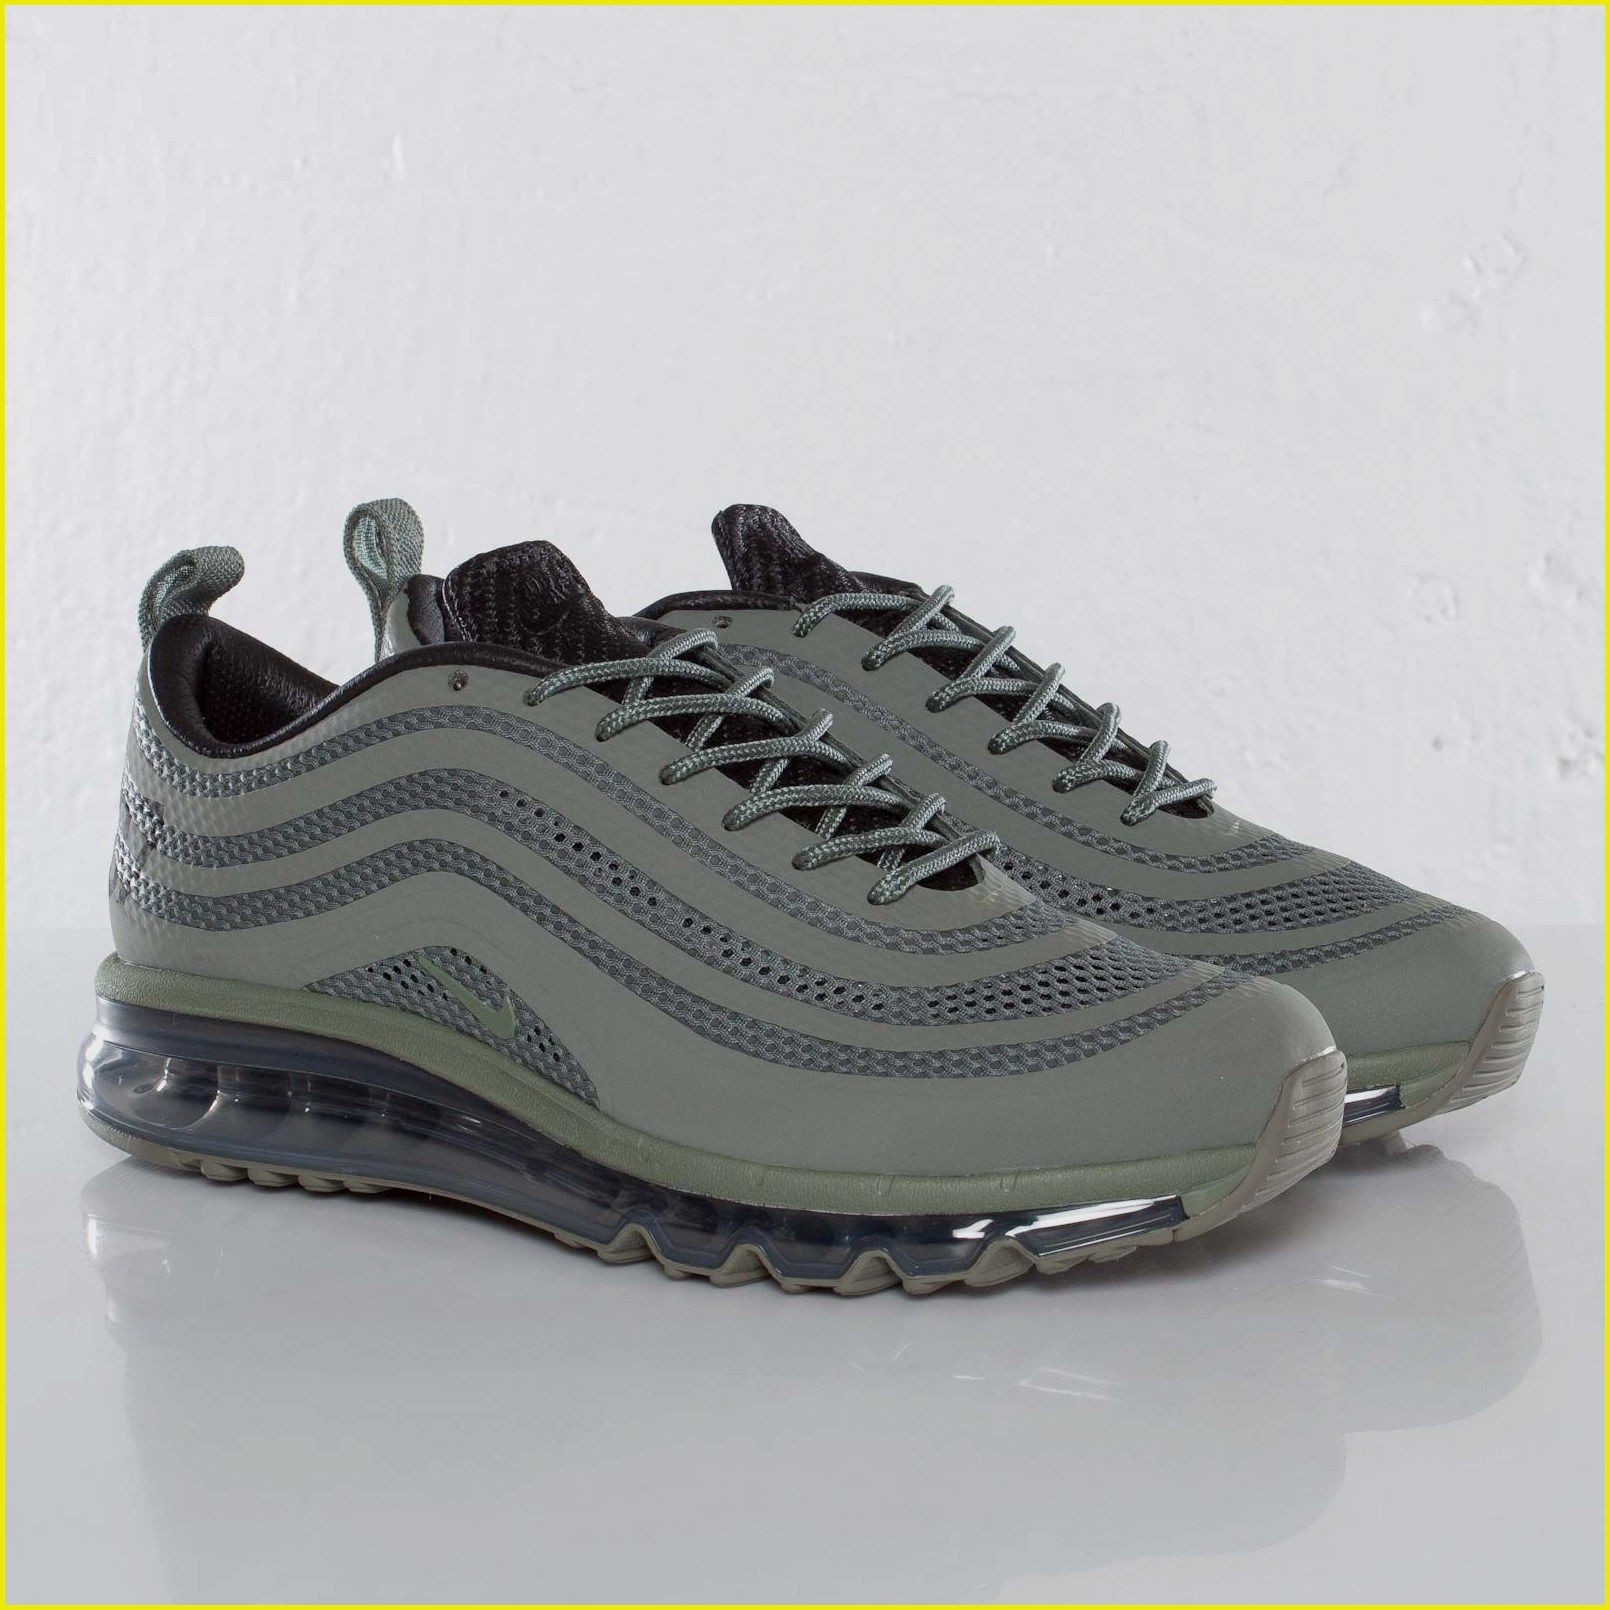 08212e4d66 Official Images: Nike Air Max Plus 97 Light Orewood Brown | Dr Wongs  Emporium of Tings | Nike air max, Nike air max plus, Sneakers nike